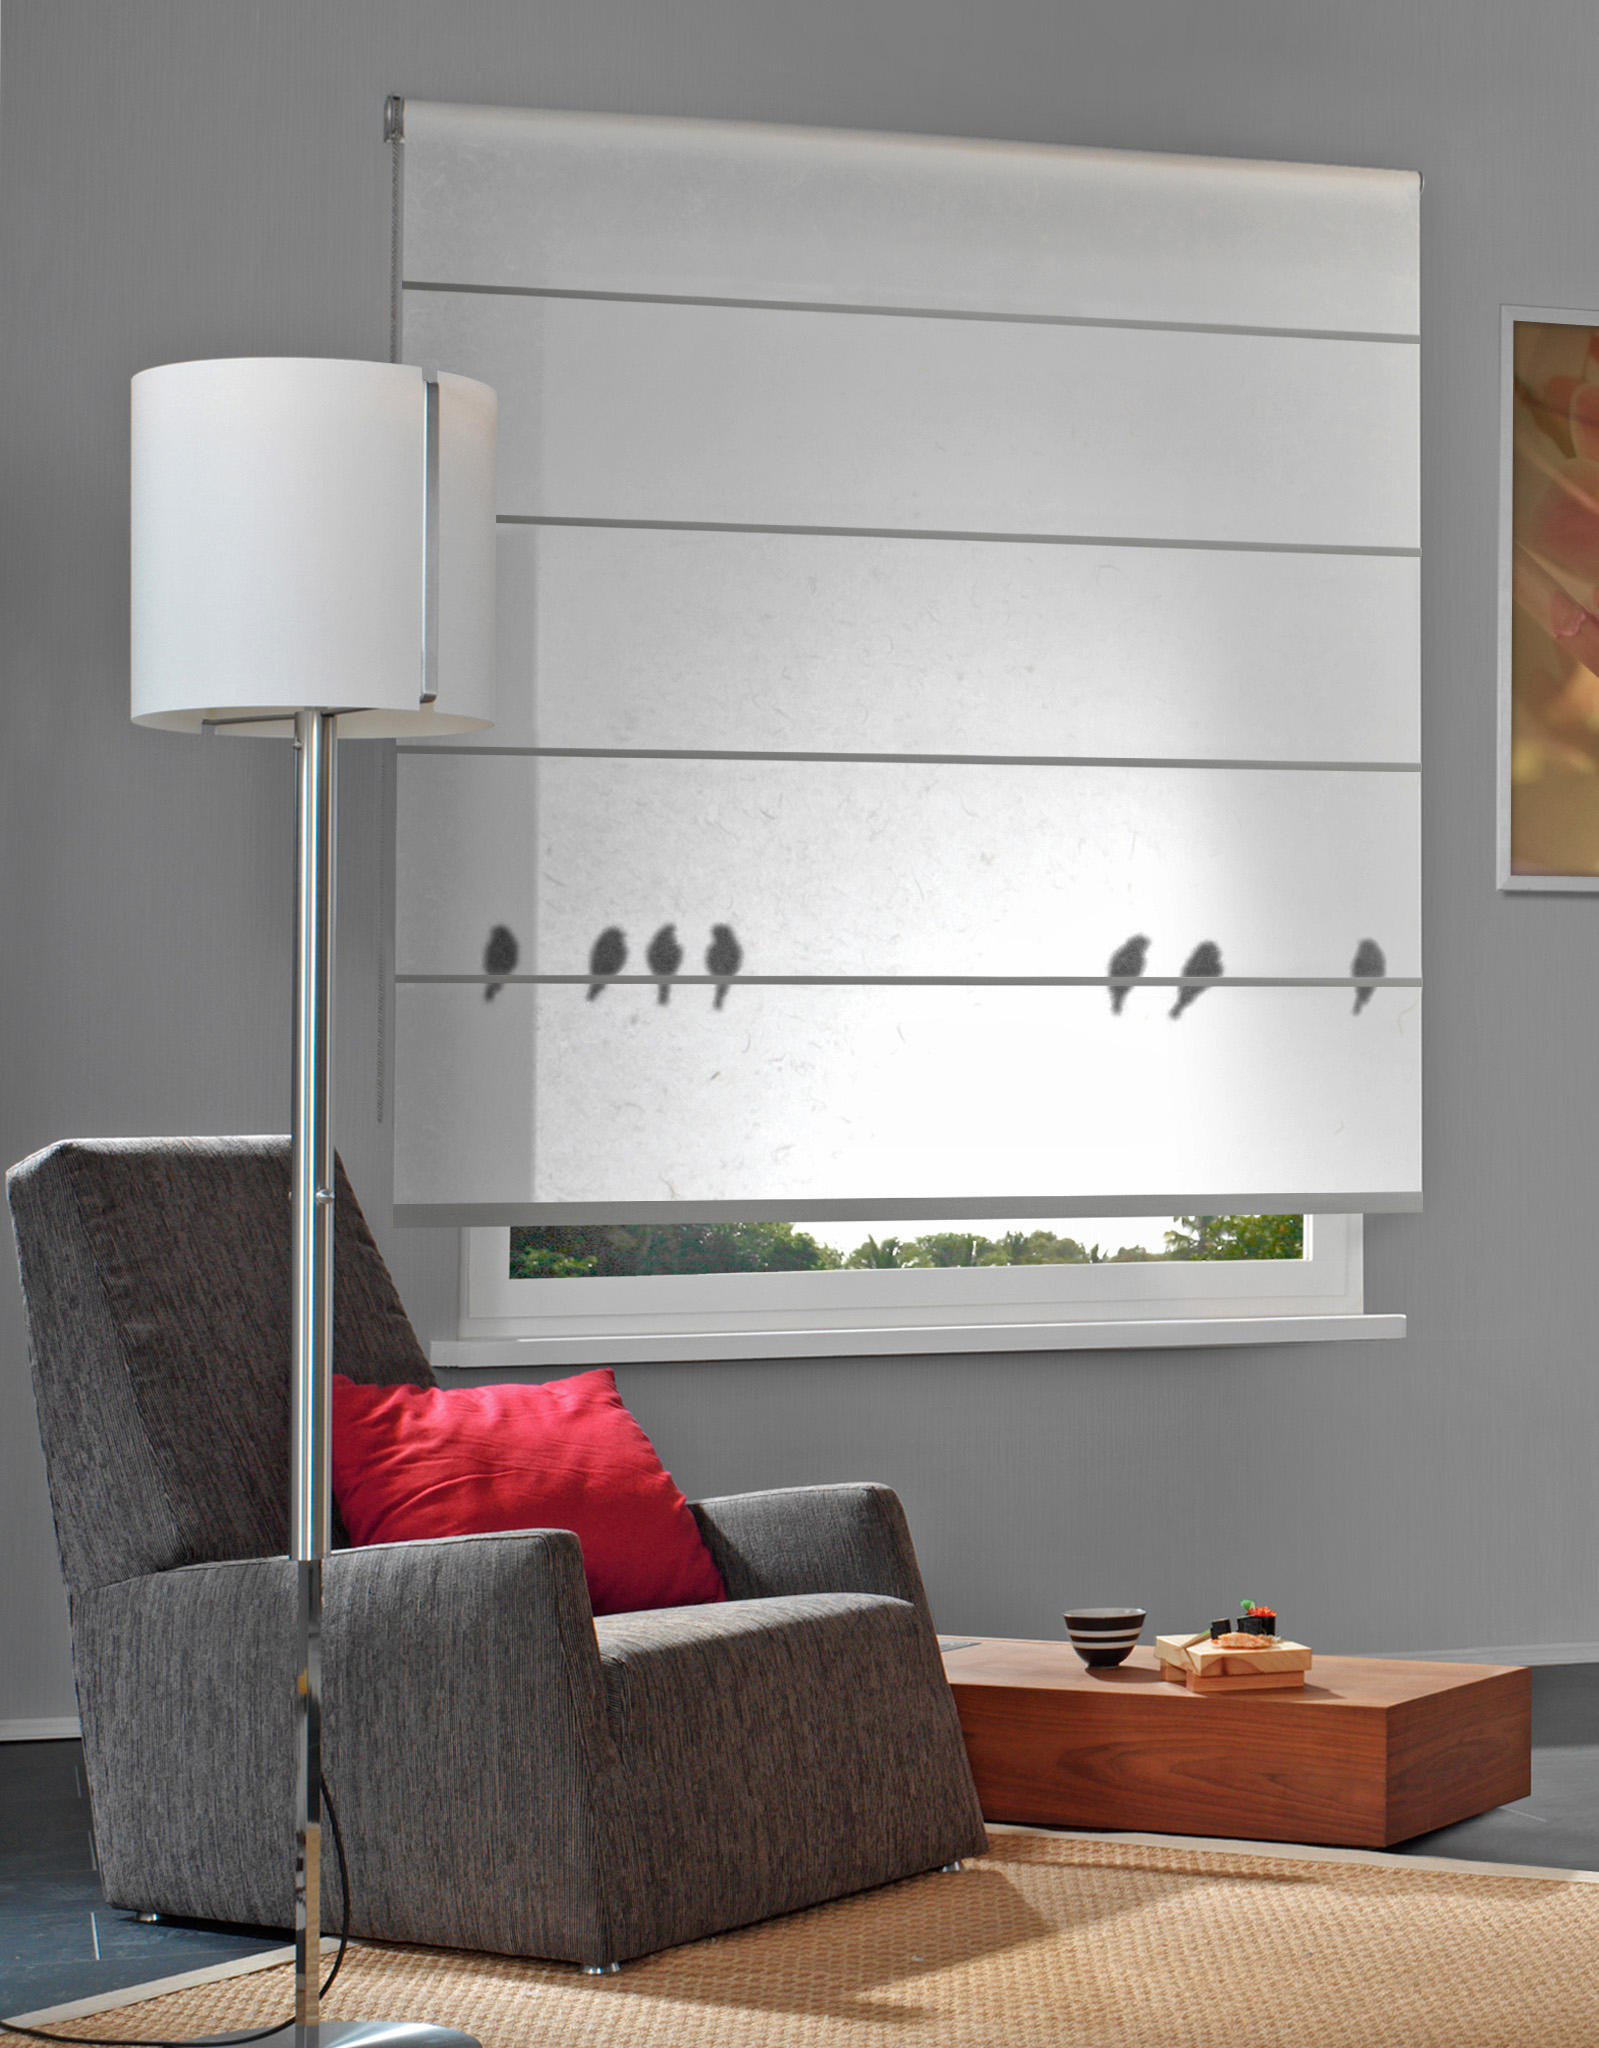 Rollo Bremen Rollo Shades Panel Glides From Wood Washi Architonic